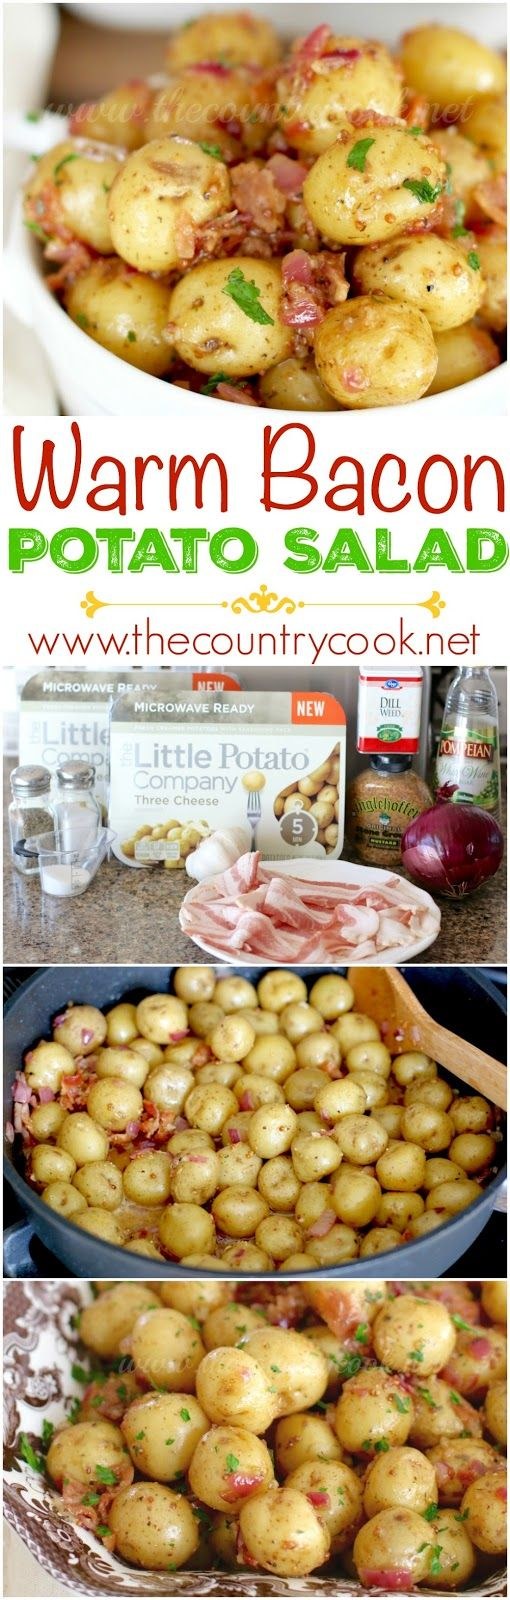 If you're a fan of German-style potato salads, then you will love this recipe! It has a slightly tangy vinaigrette (thanks to a little cour...